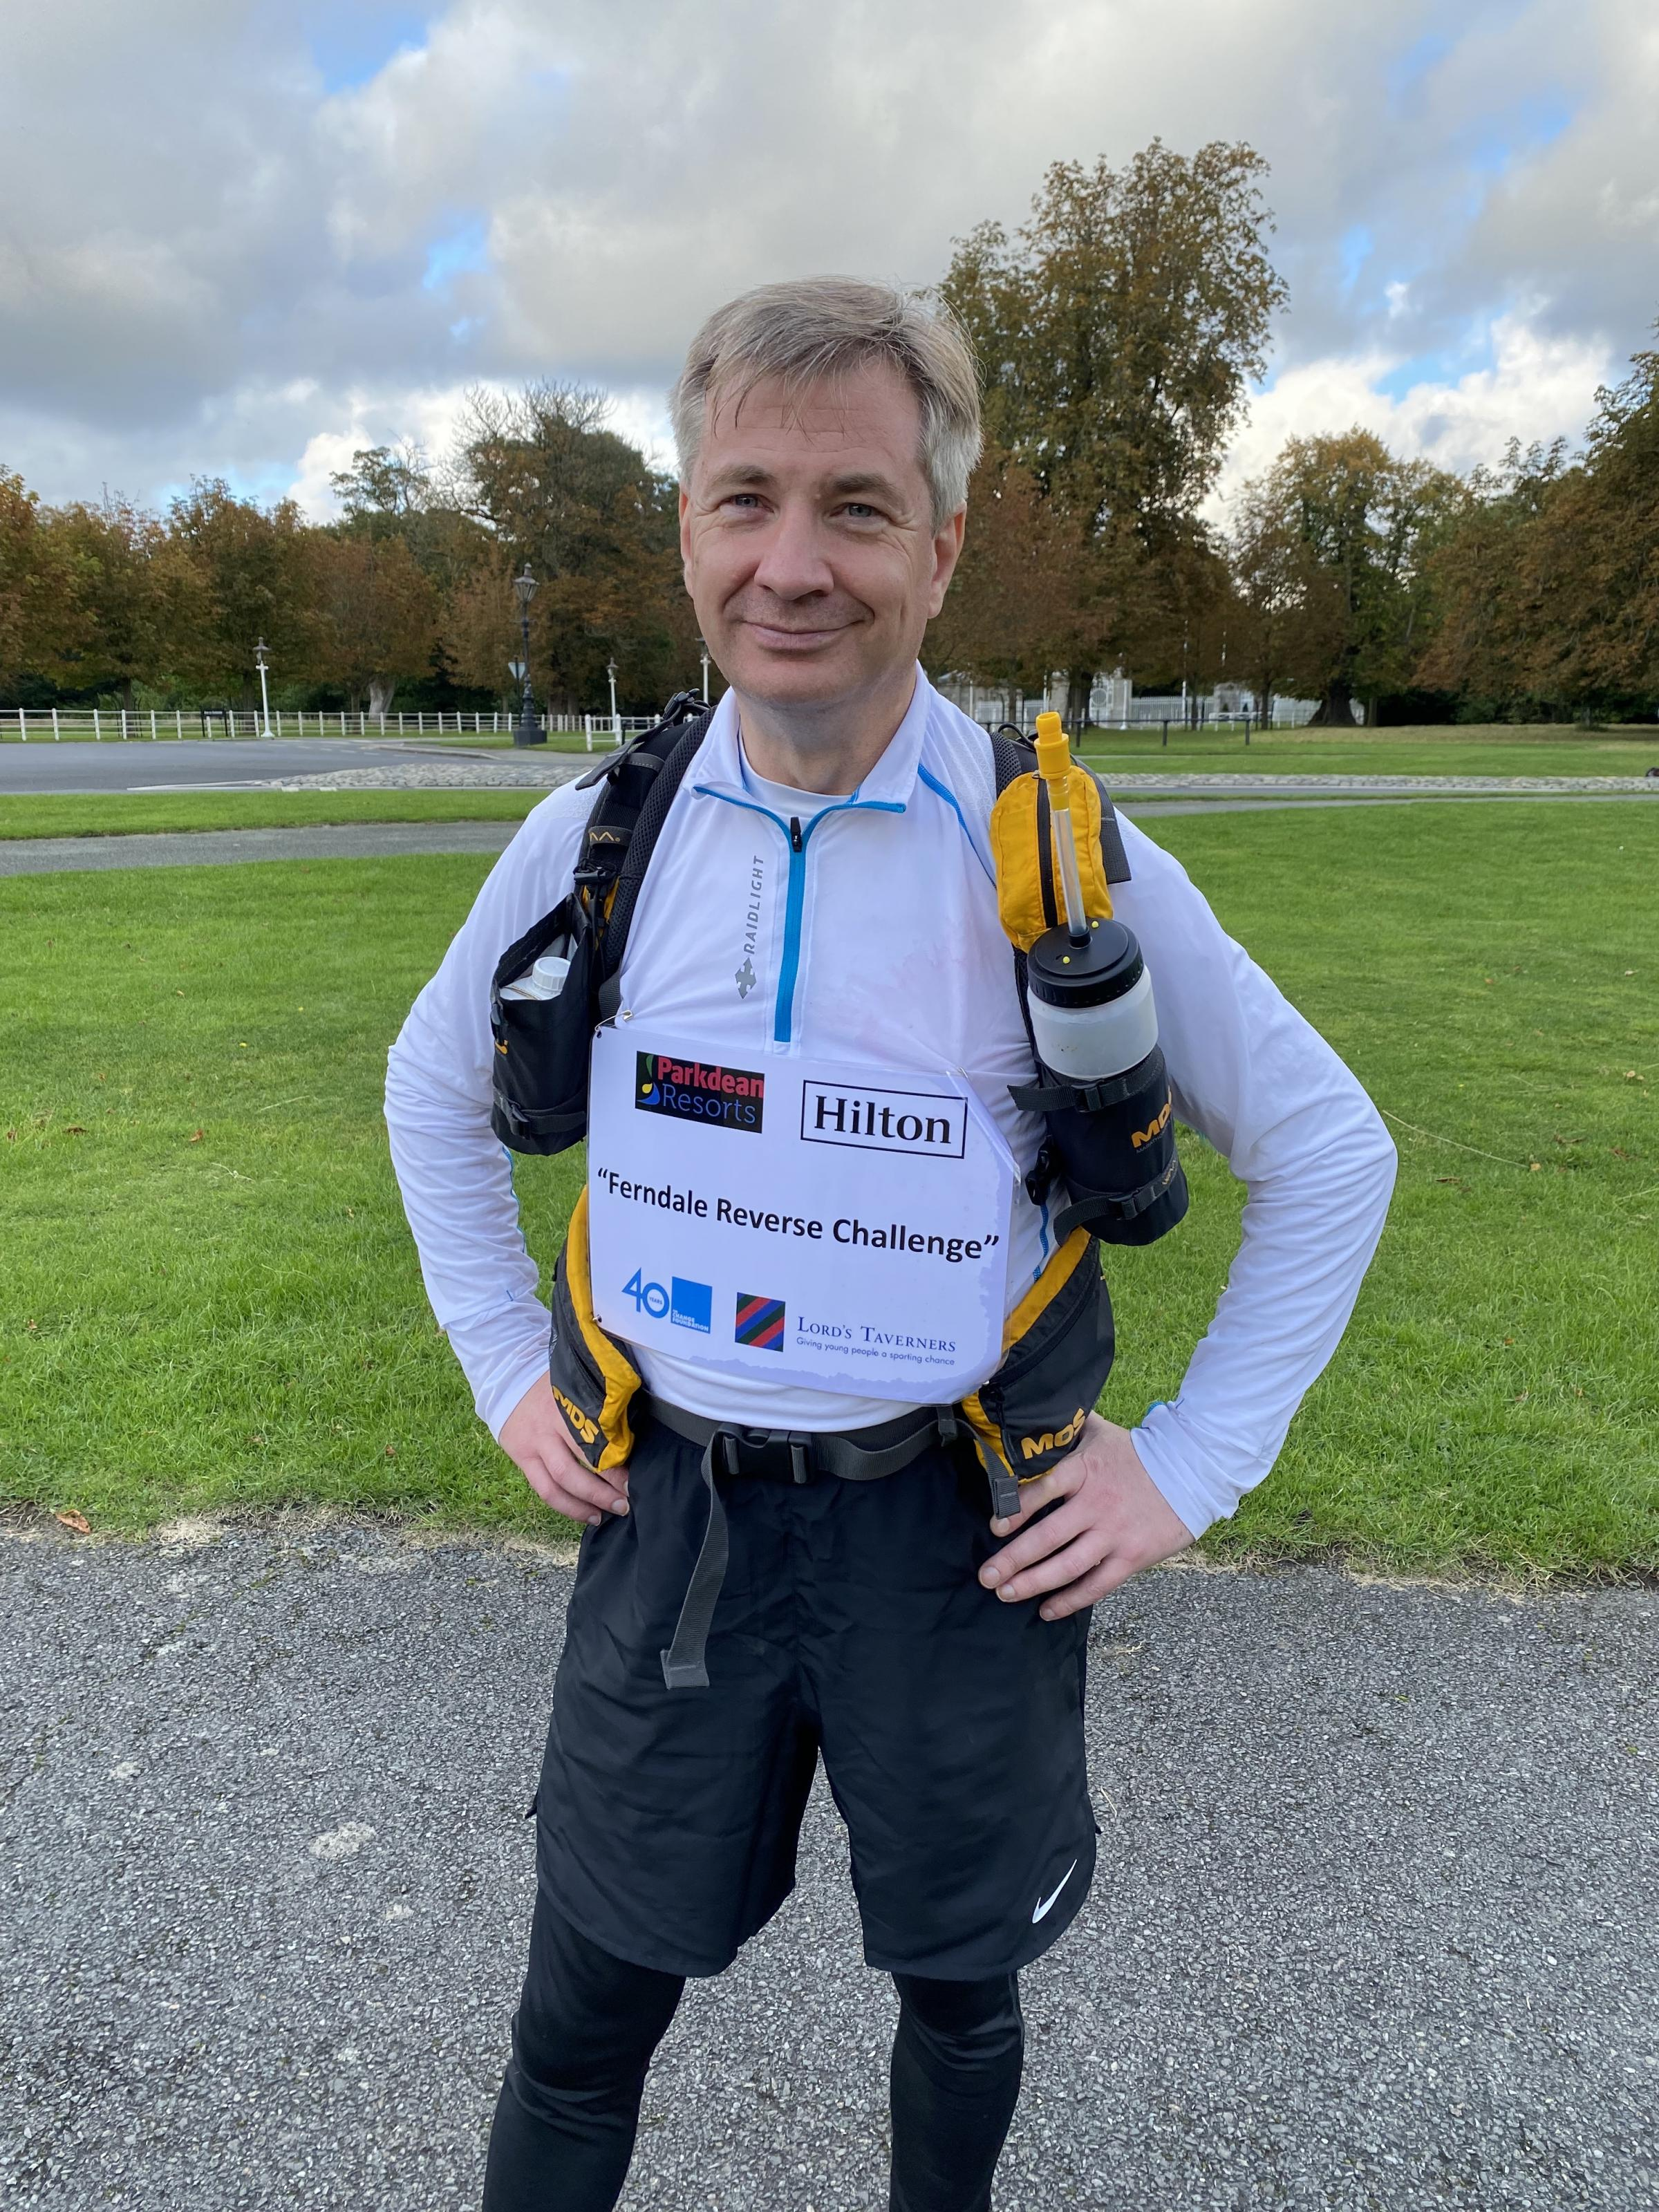 Charity star Michael Ferndale reflects on epic five-day Reverse Running Challenge journey